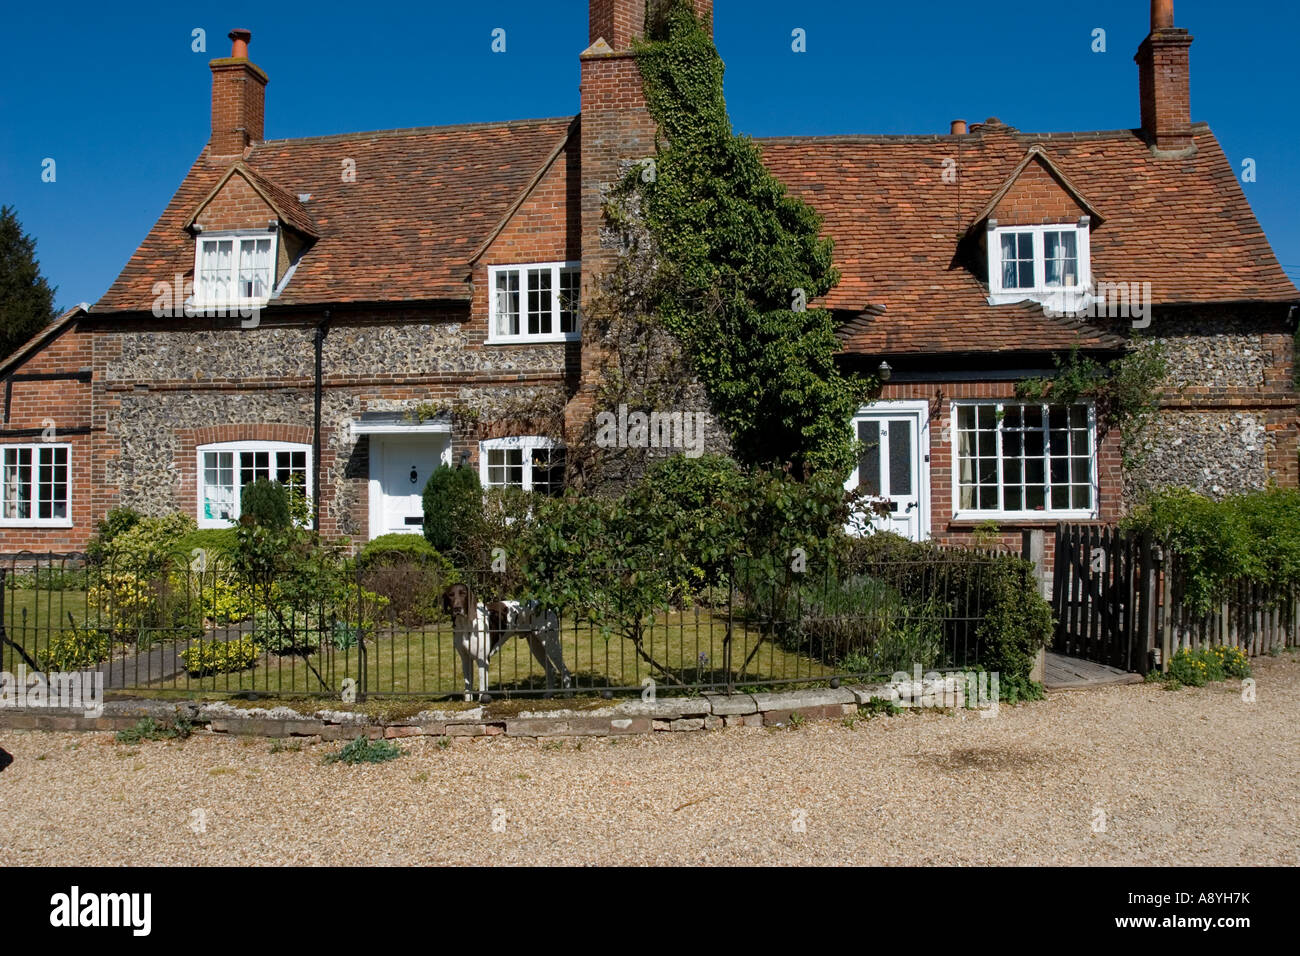 Cottages - Hambleden Village - Thames Valley - Buckinghamshire - Stock Image